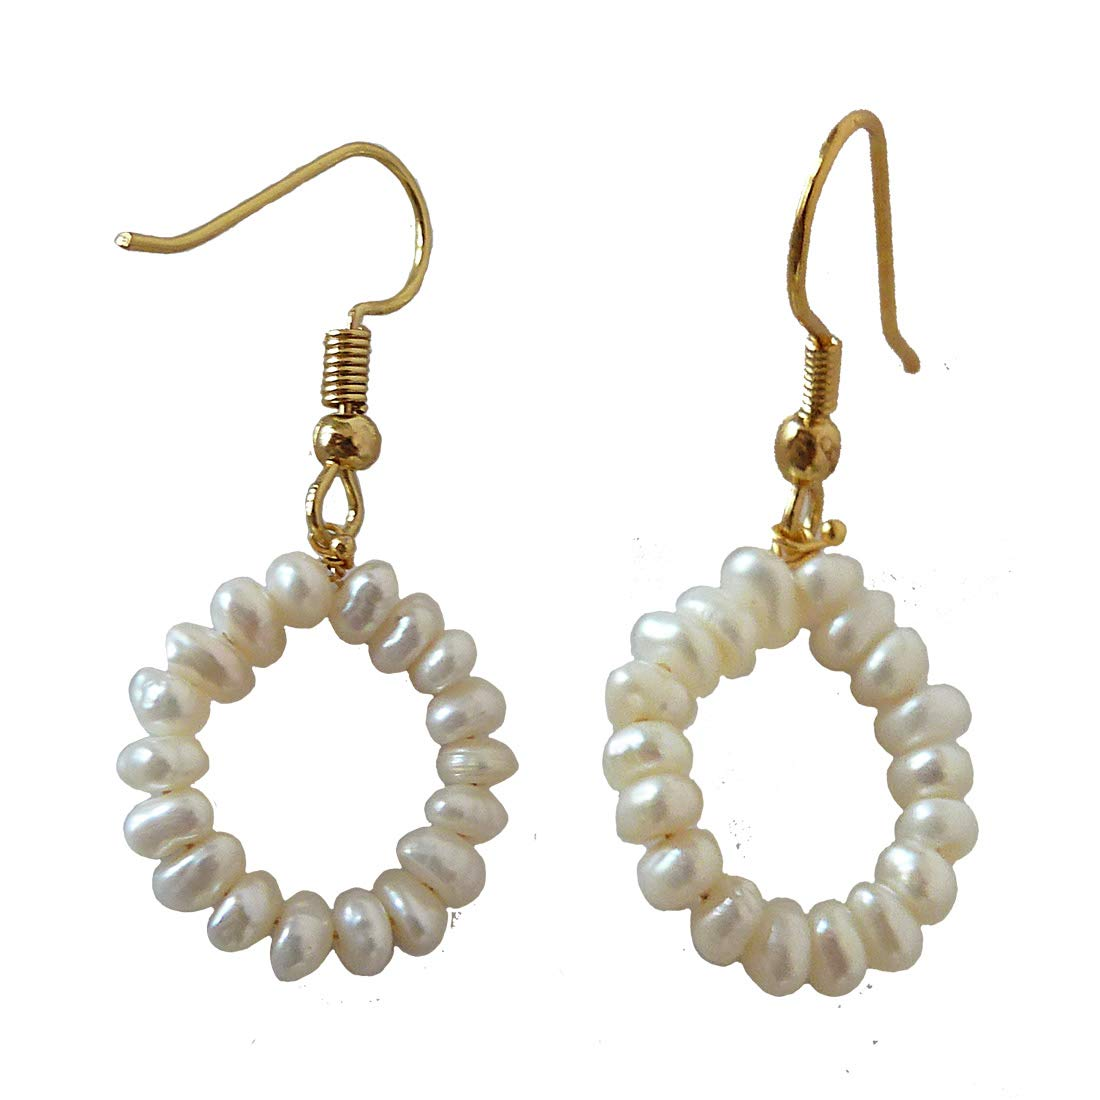 Dangling Circular Real Freshwater Pearl and Gold Plated Wire Style Earrings (SE379)